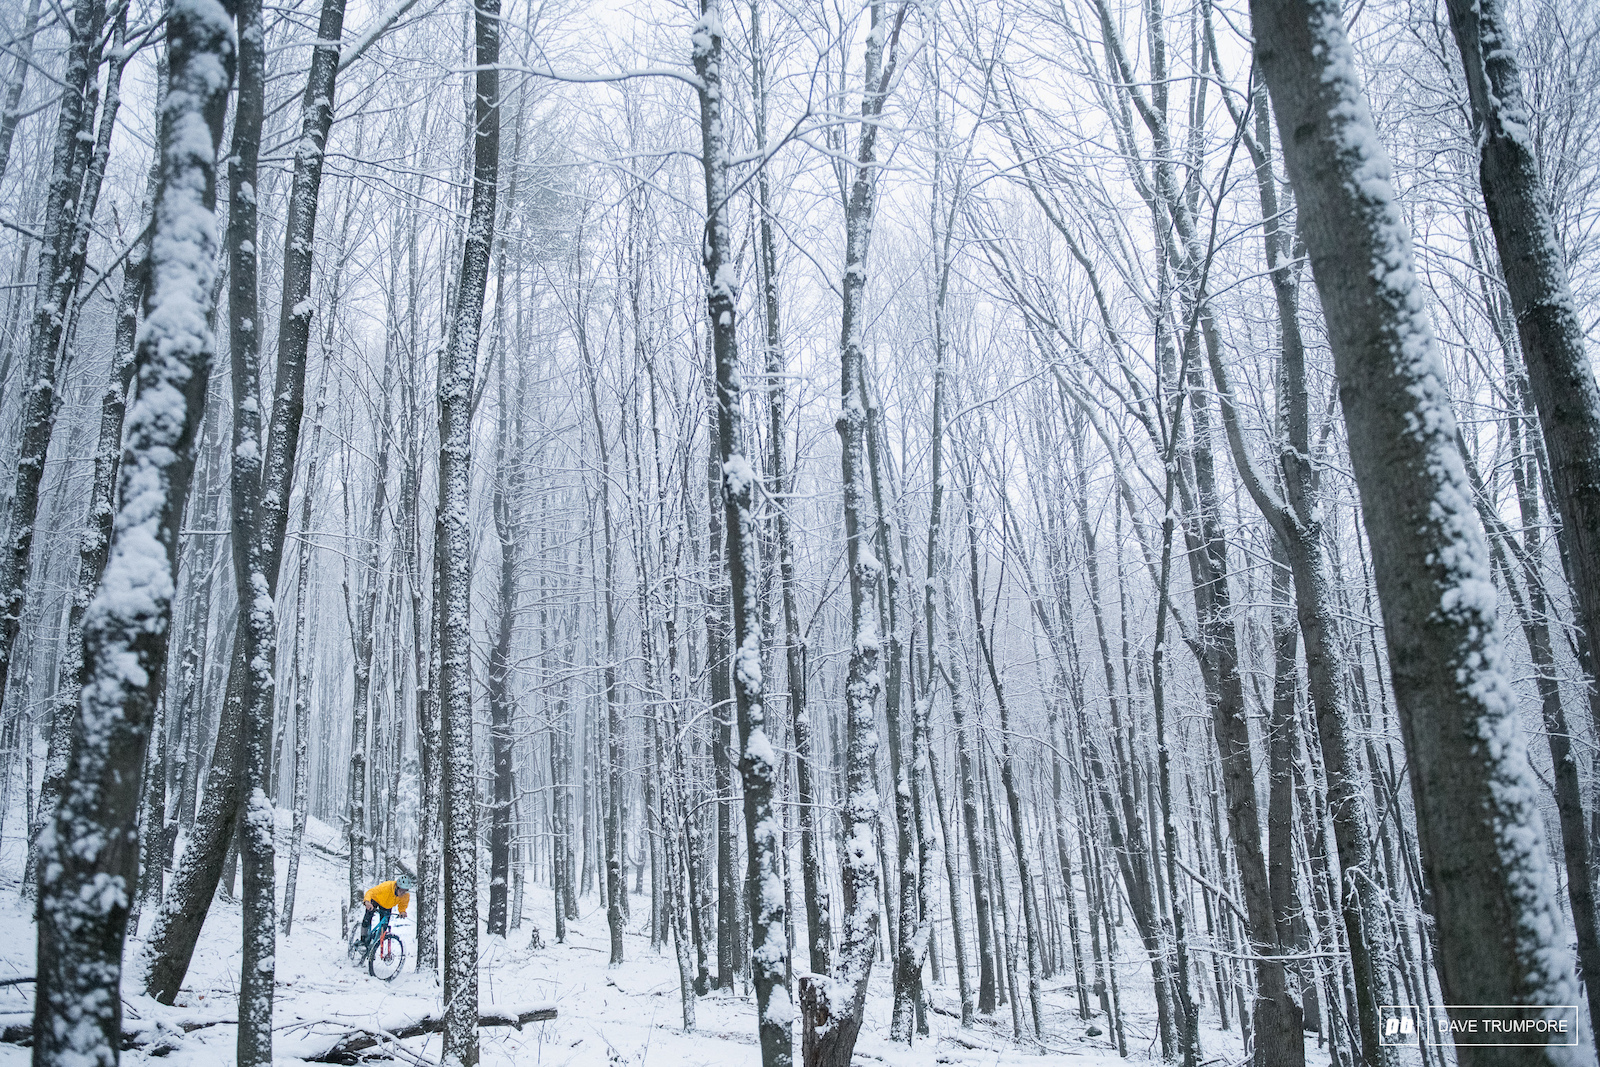 The first snow if the year came early this past fall in Vermont. With good dirt still just below Evan Booth enjoys some unique mixed conditions.